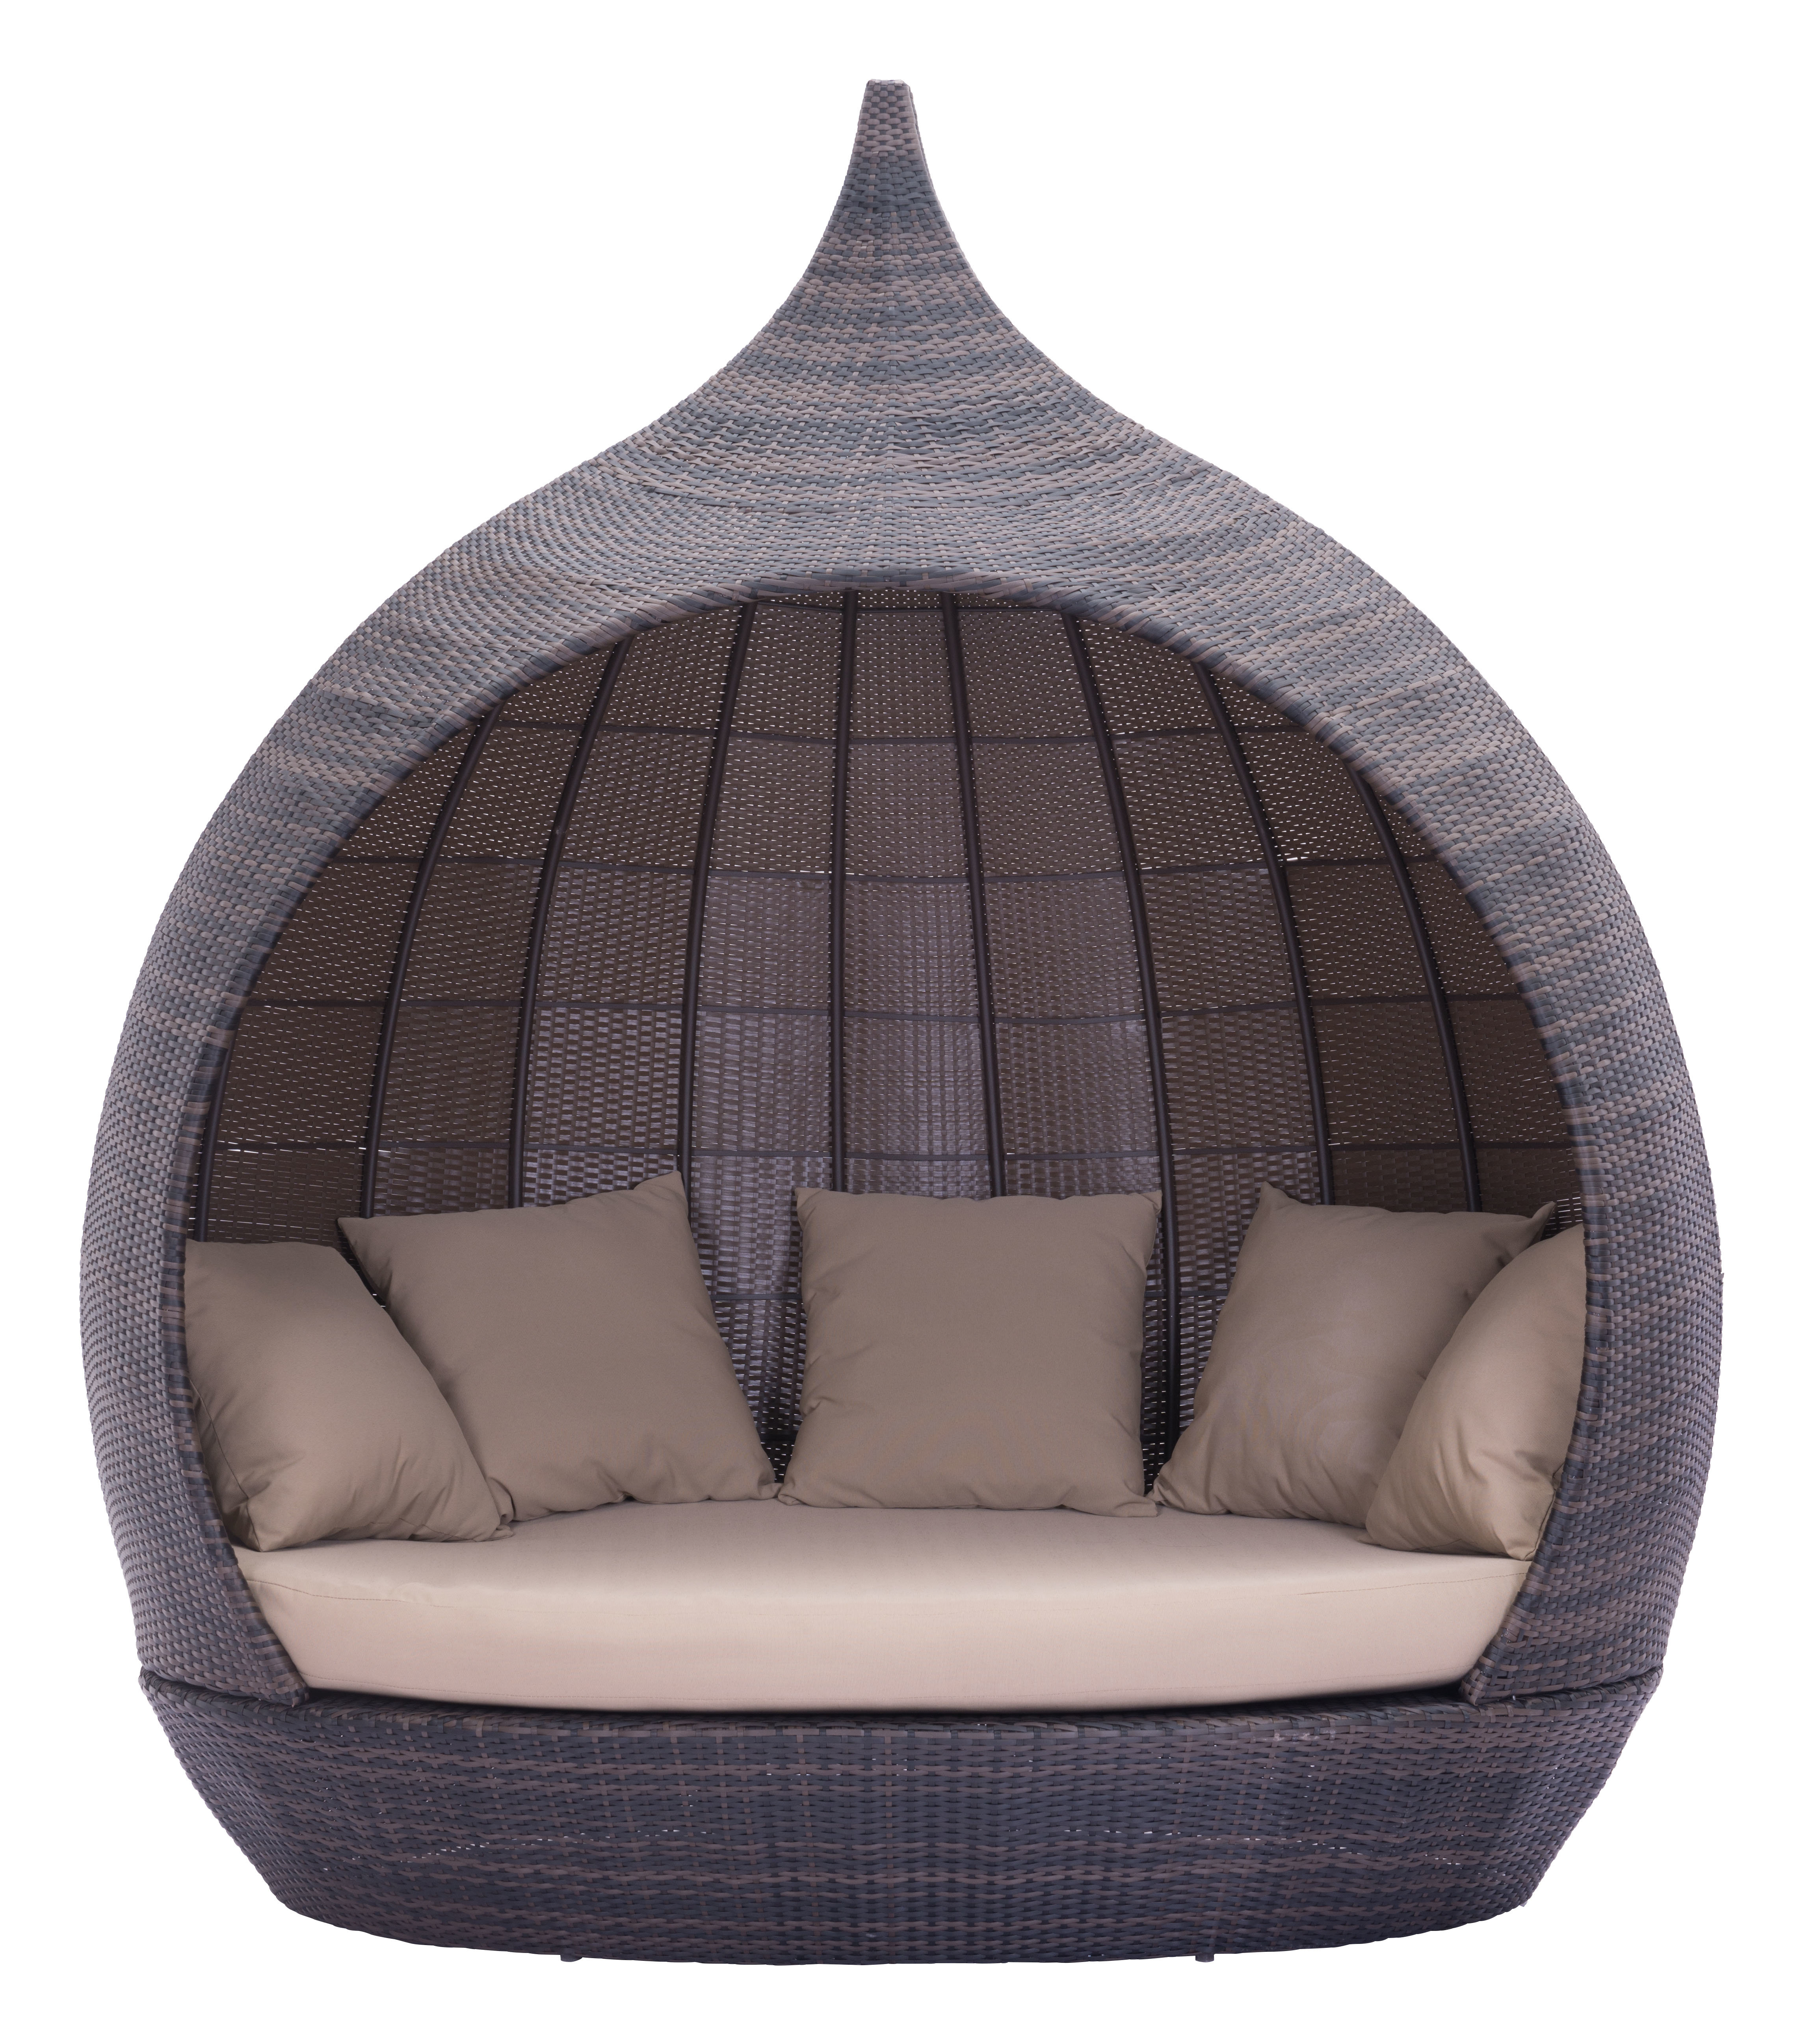 Most Recently Released Brentwood Patio Daybeds With Cushions Within Hatley Patio Daybed With Cushions (View 15 of 25)